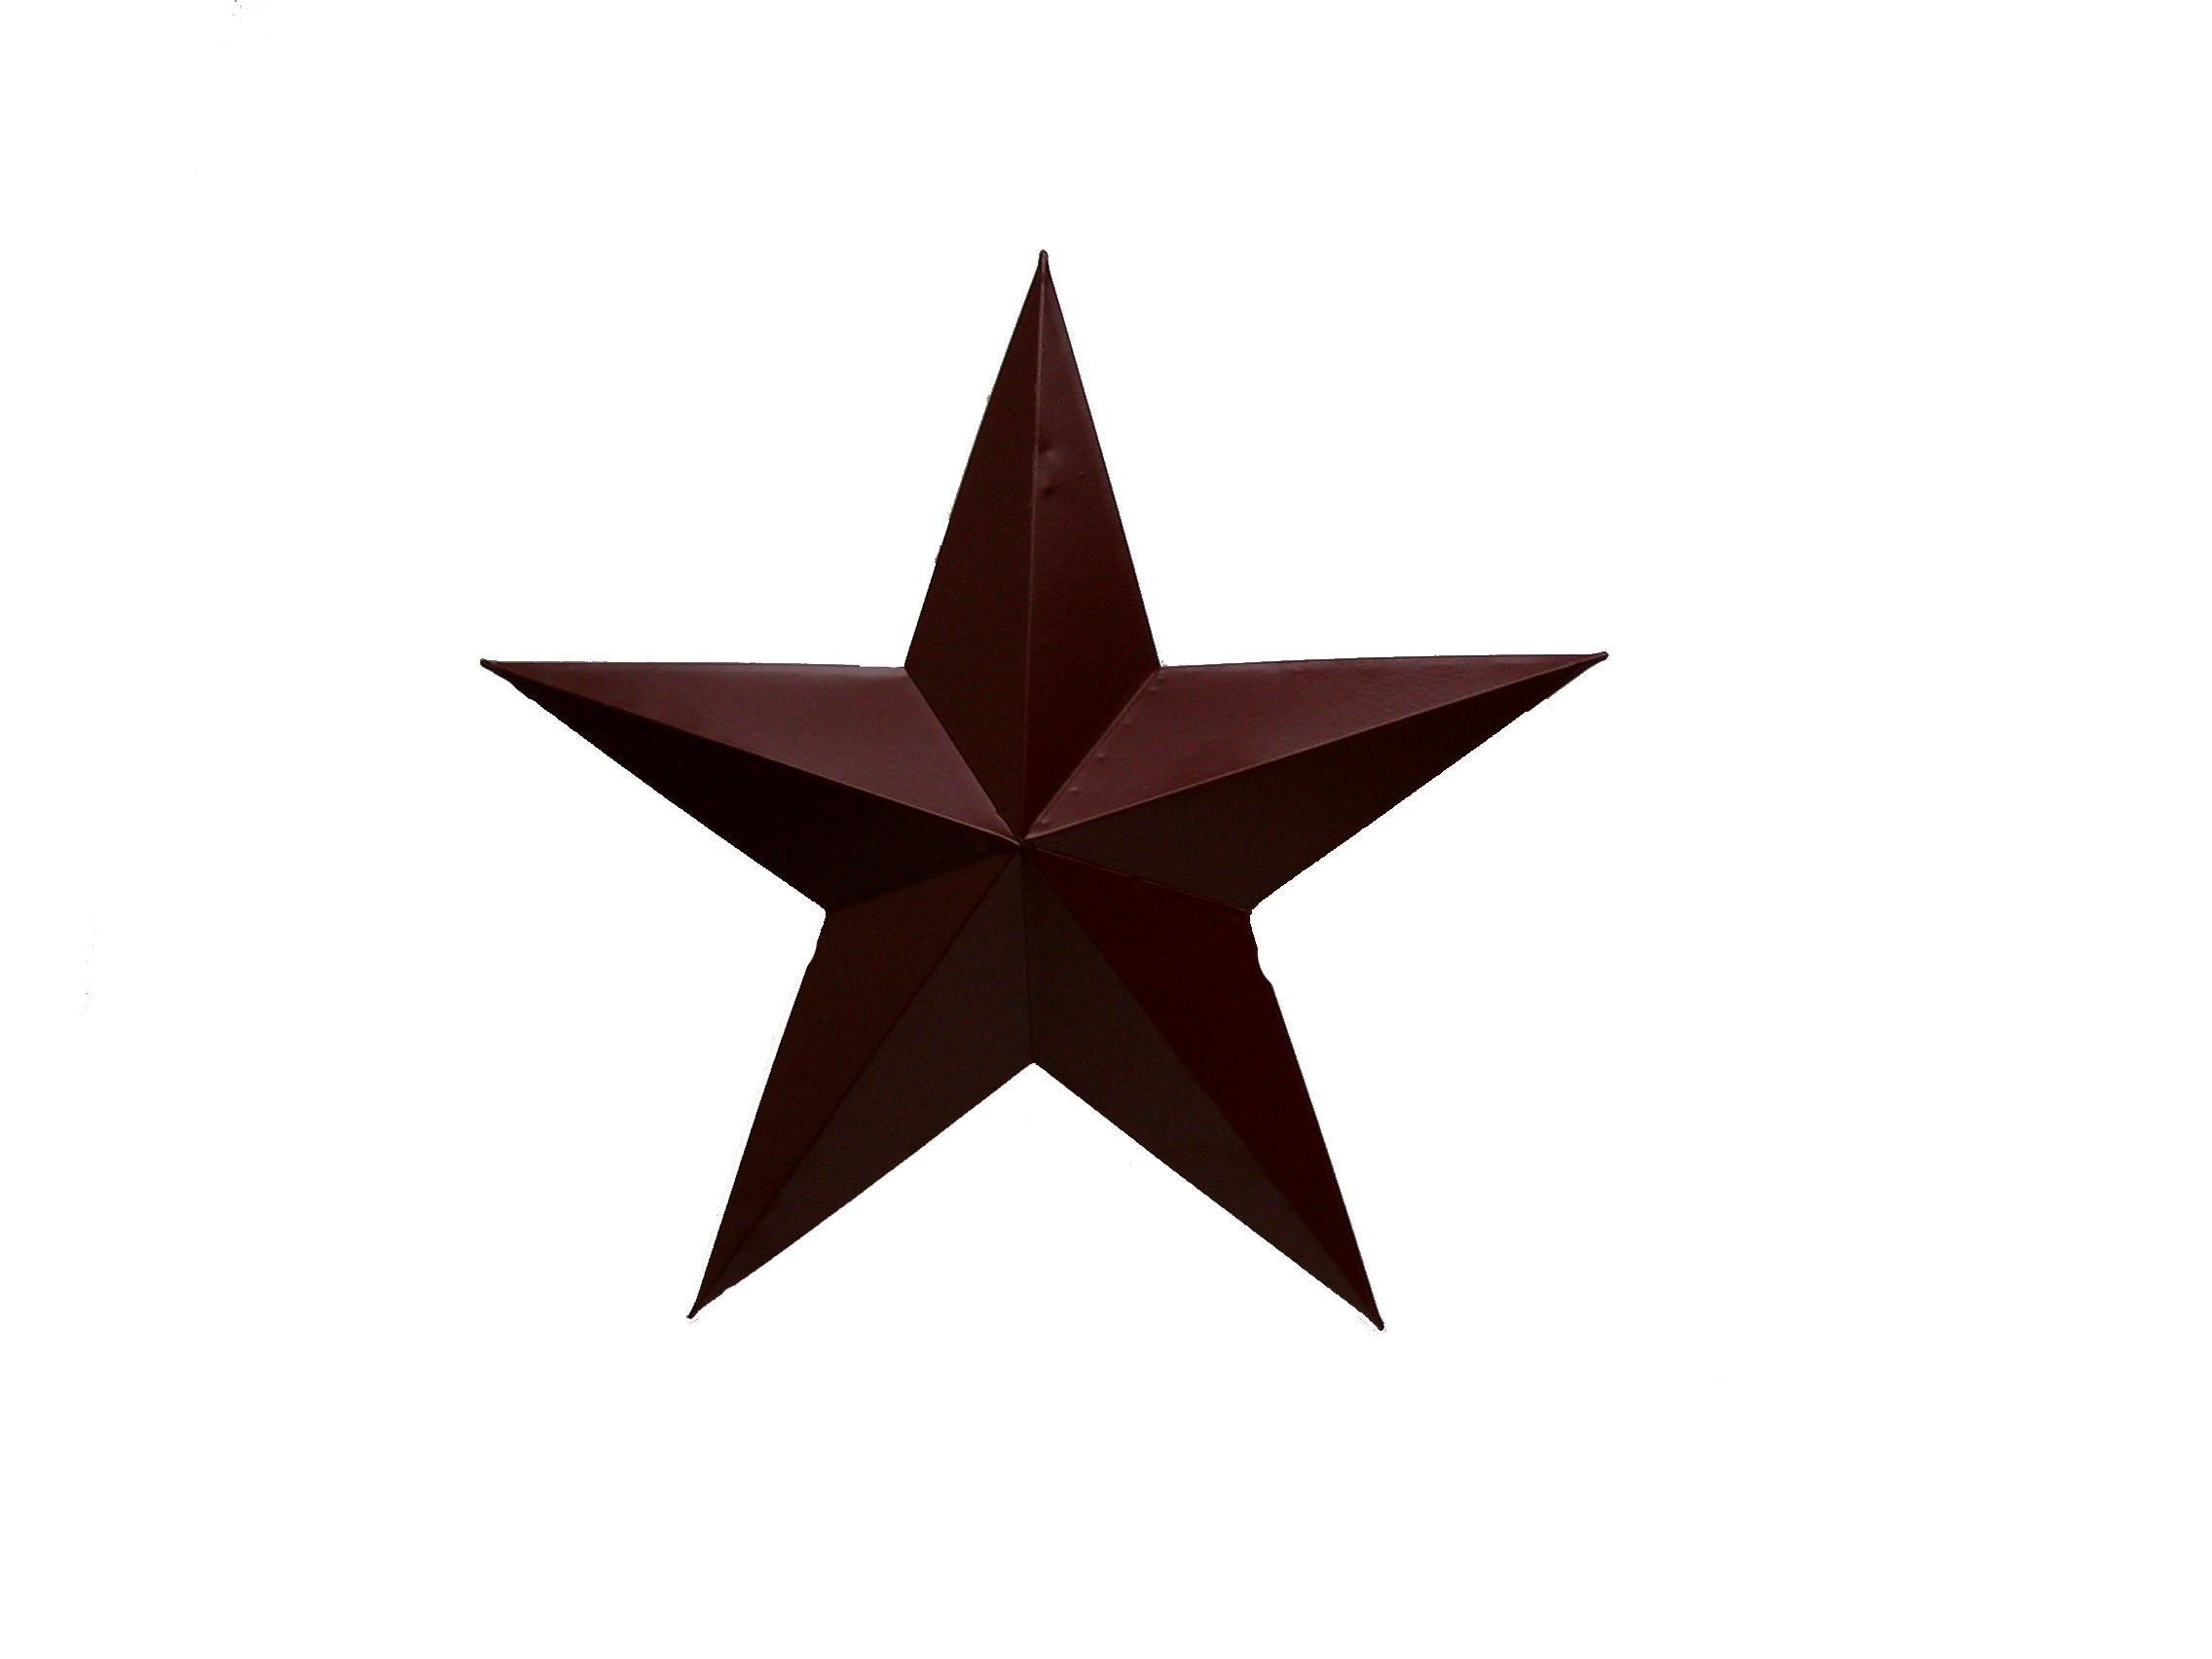 Craft Outlet Tin Star Wall Decor, 30-Inch, Barn Red